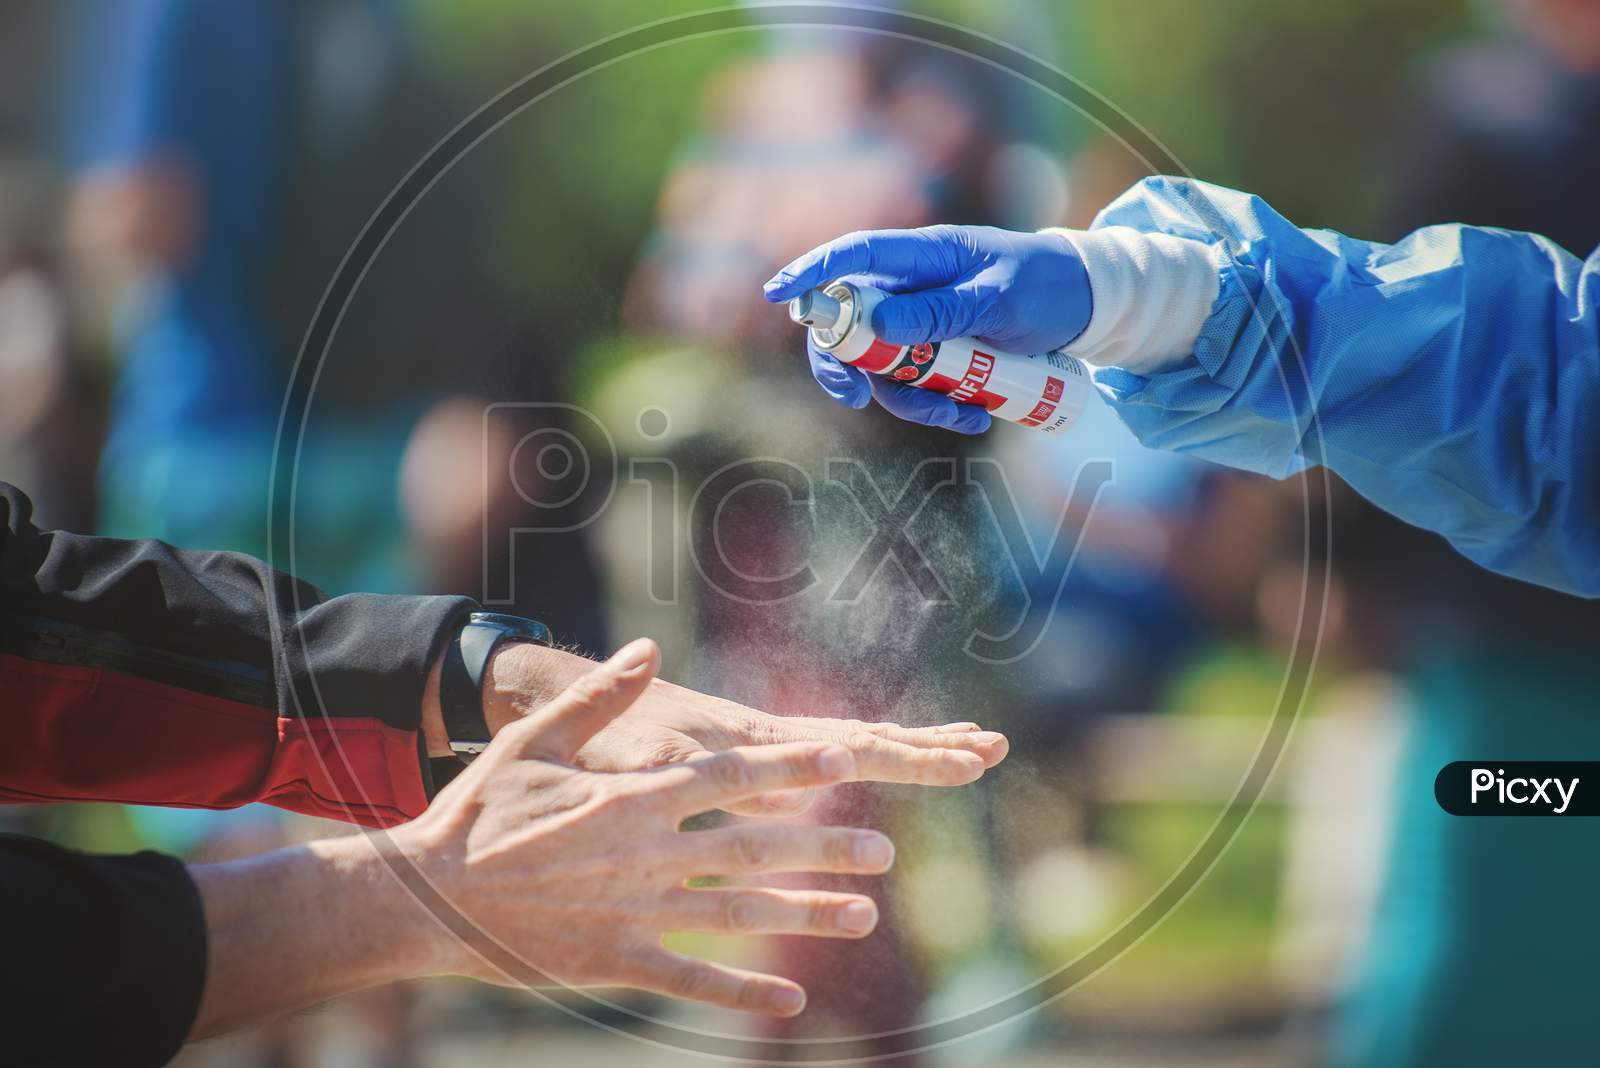 Close-up of a medic hand spraying disinfectant on a man's hands on the street.